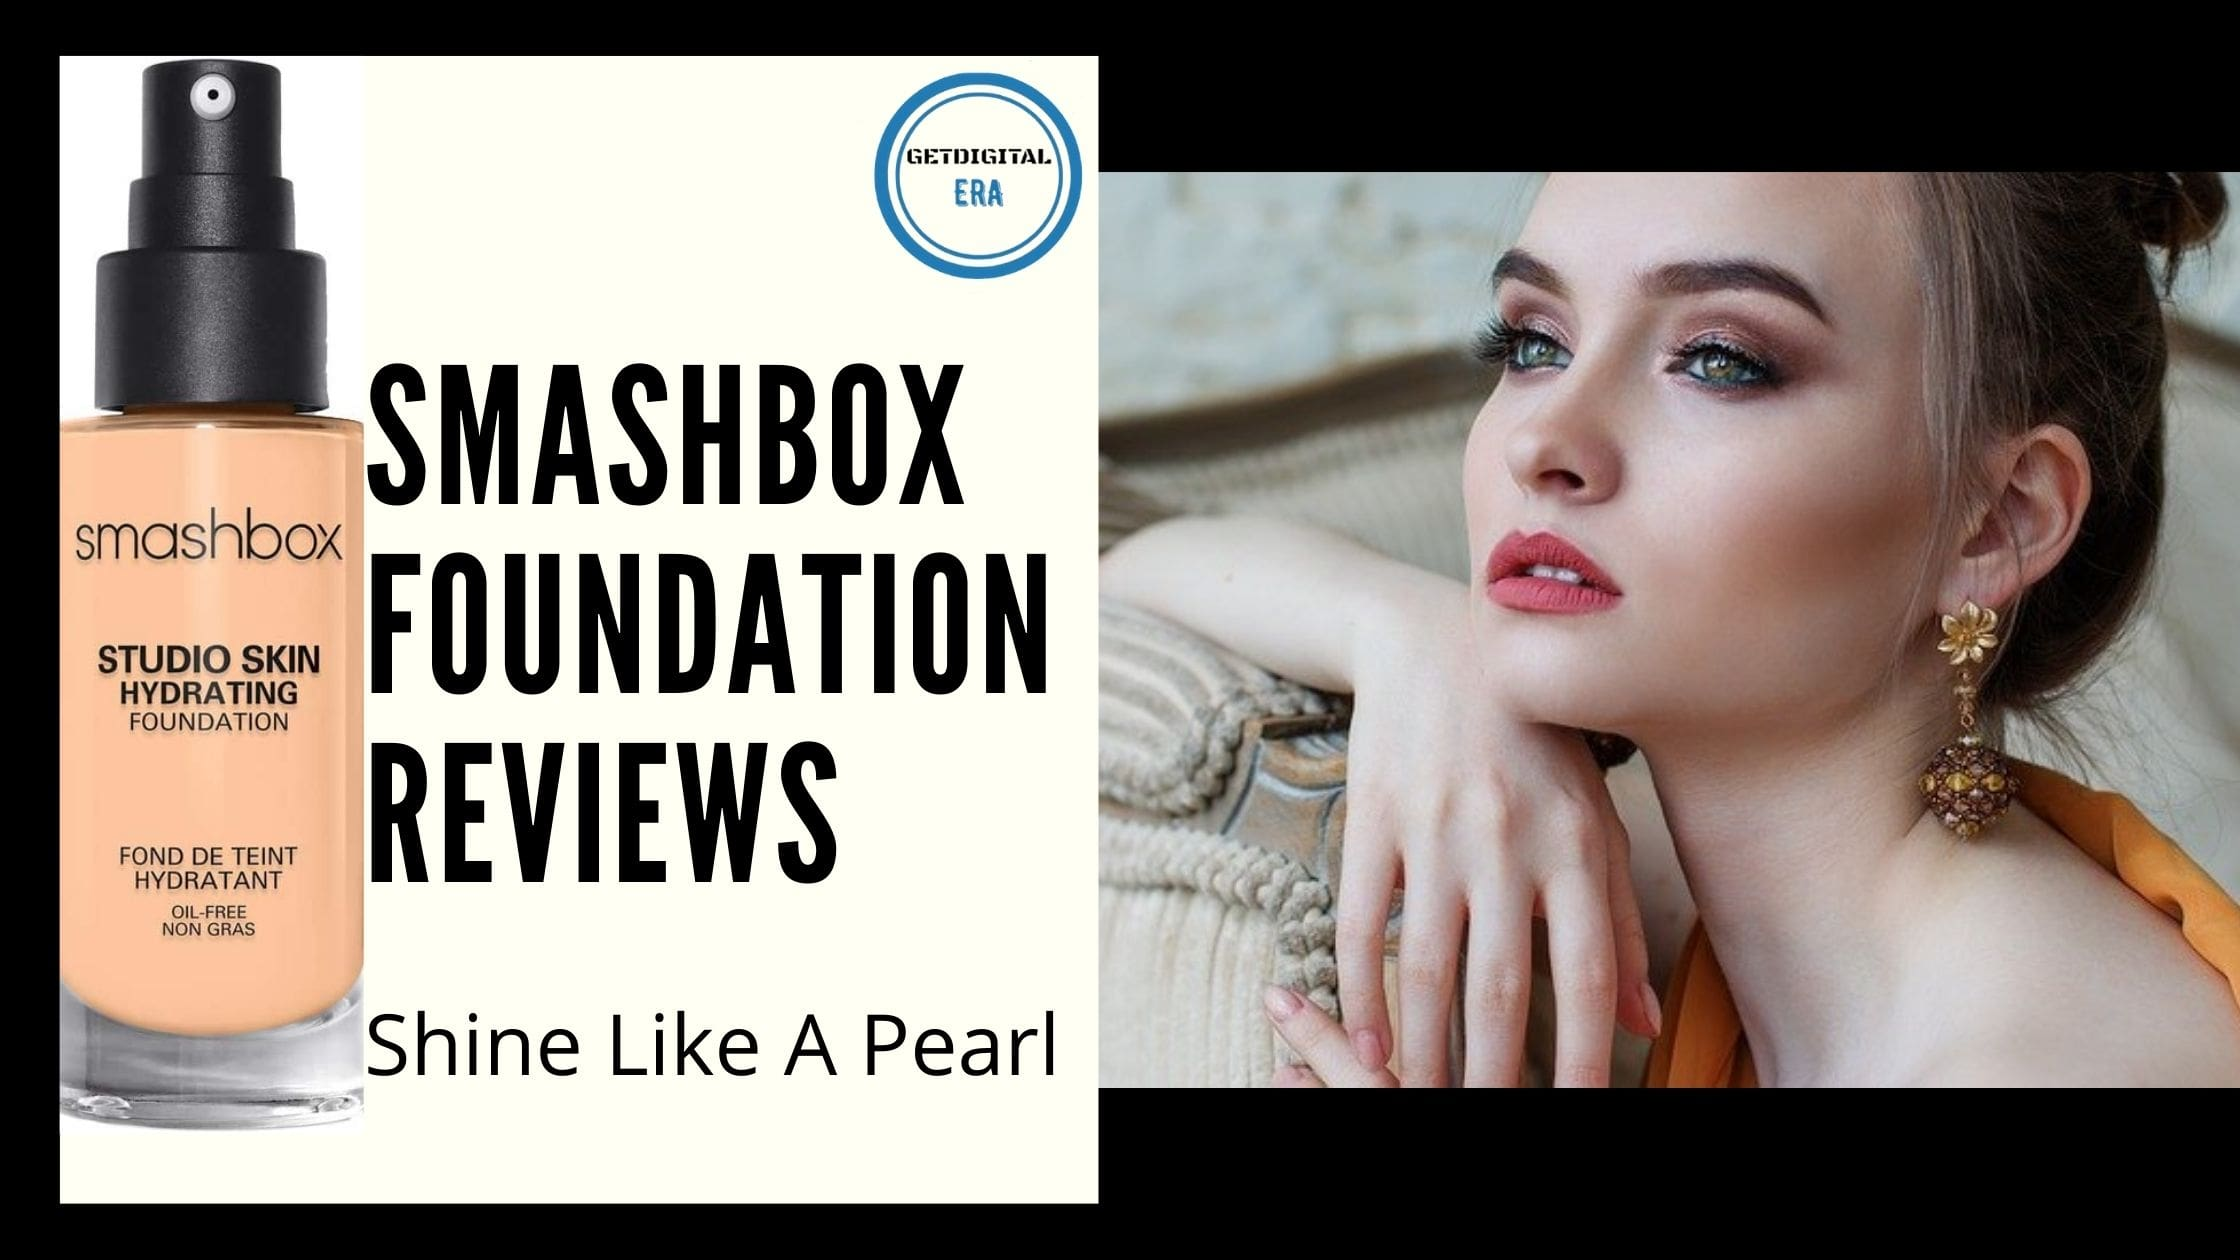 Smashbox Foundation Reviews